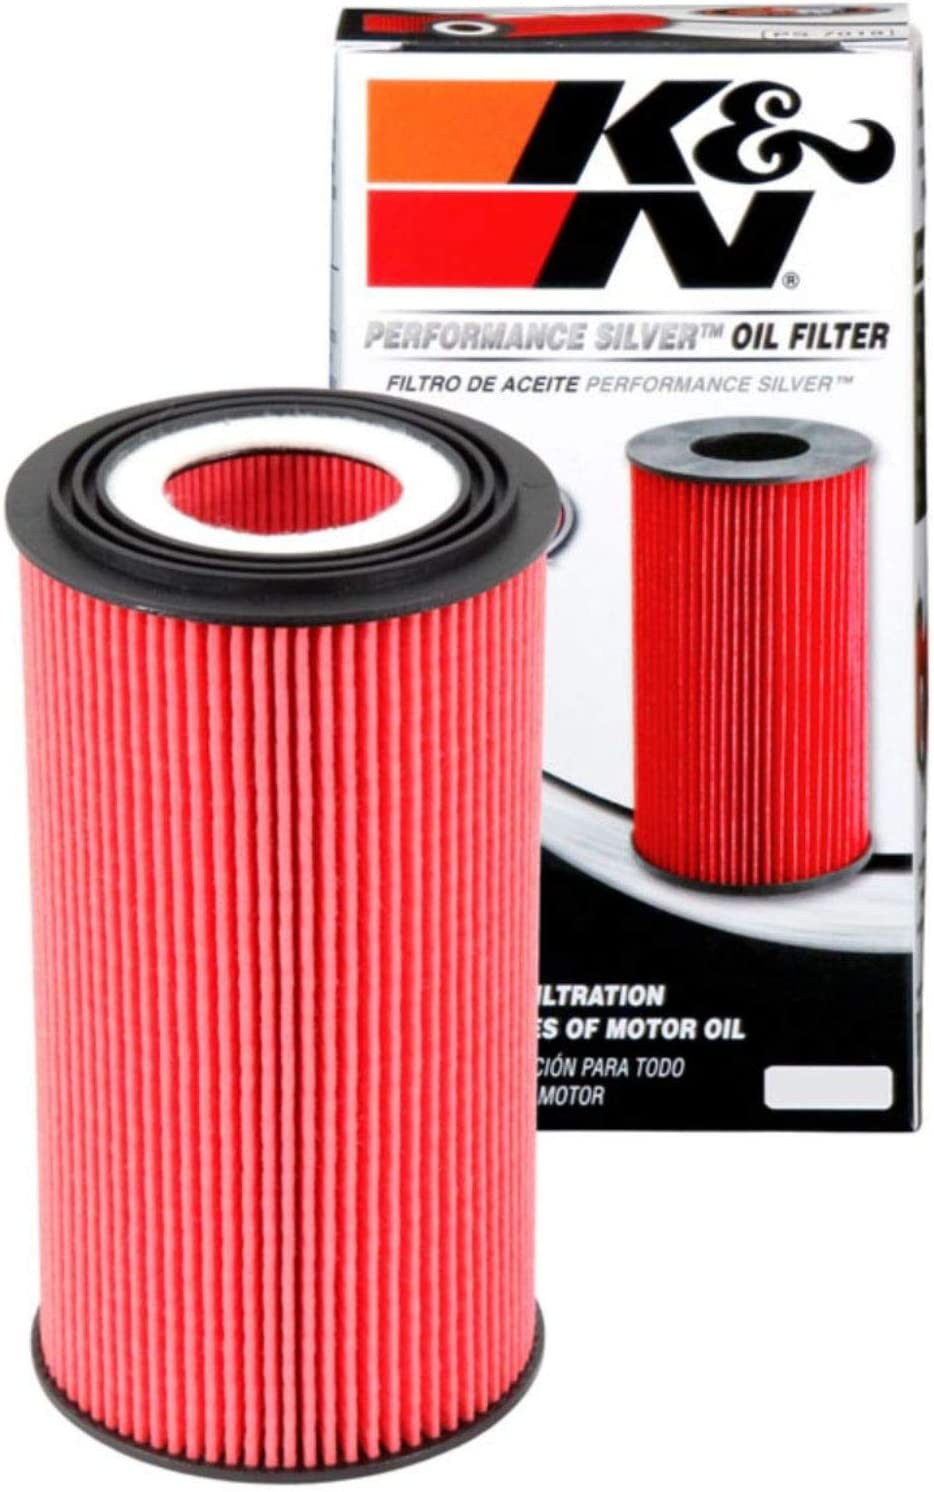 K&N Premium Oil Filter: Designed to Protect your Engine: Fits Select LAND ROVER/BMW/ROLLS ROYCE/BENTLEY Vehicle Models (See Product Description for Full List of Compatible Vehicles), PS-7006